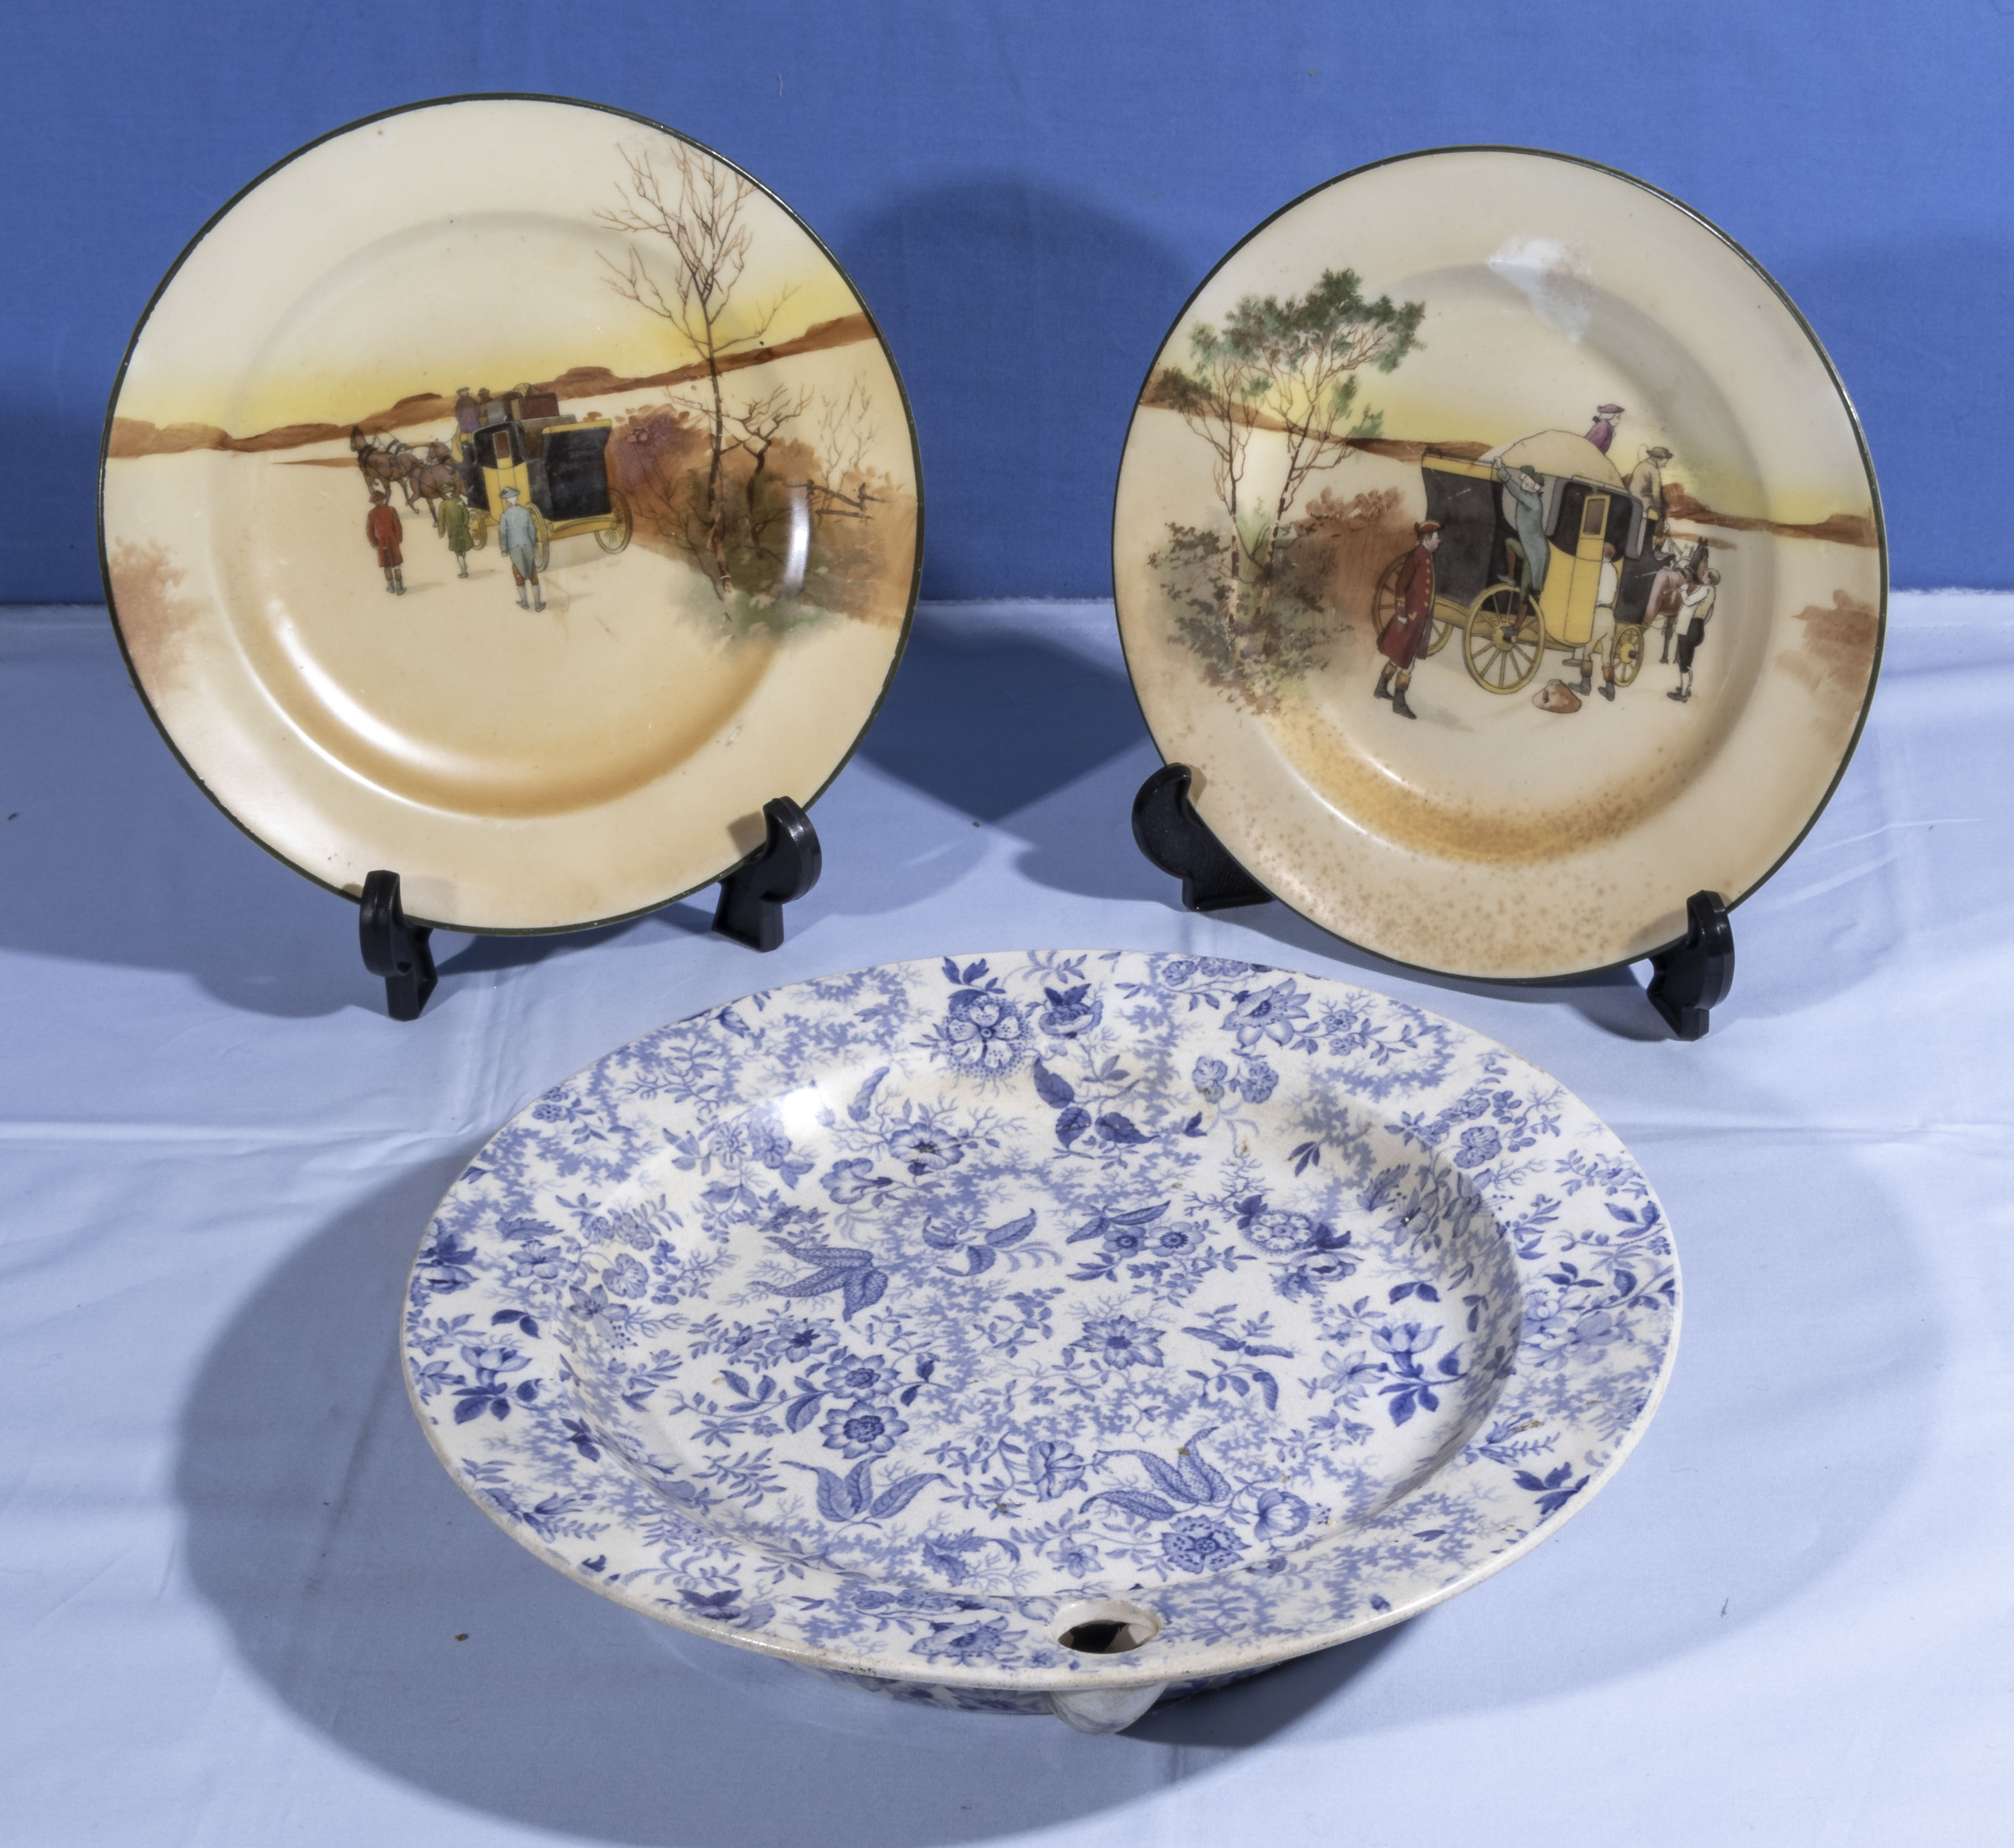 A pair of Doulton plates together with a blue and white printed hot water plate